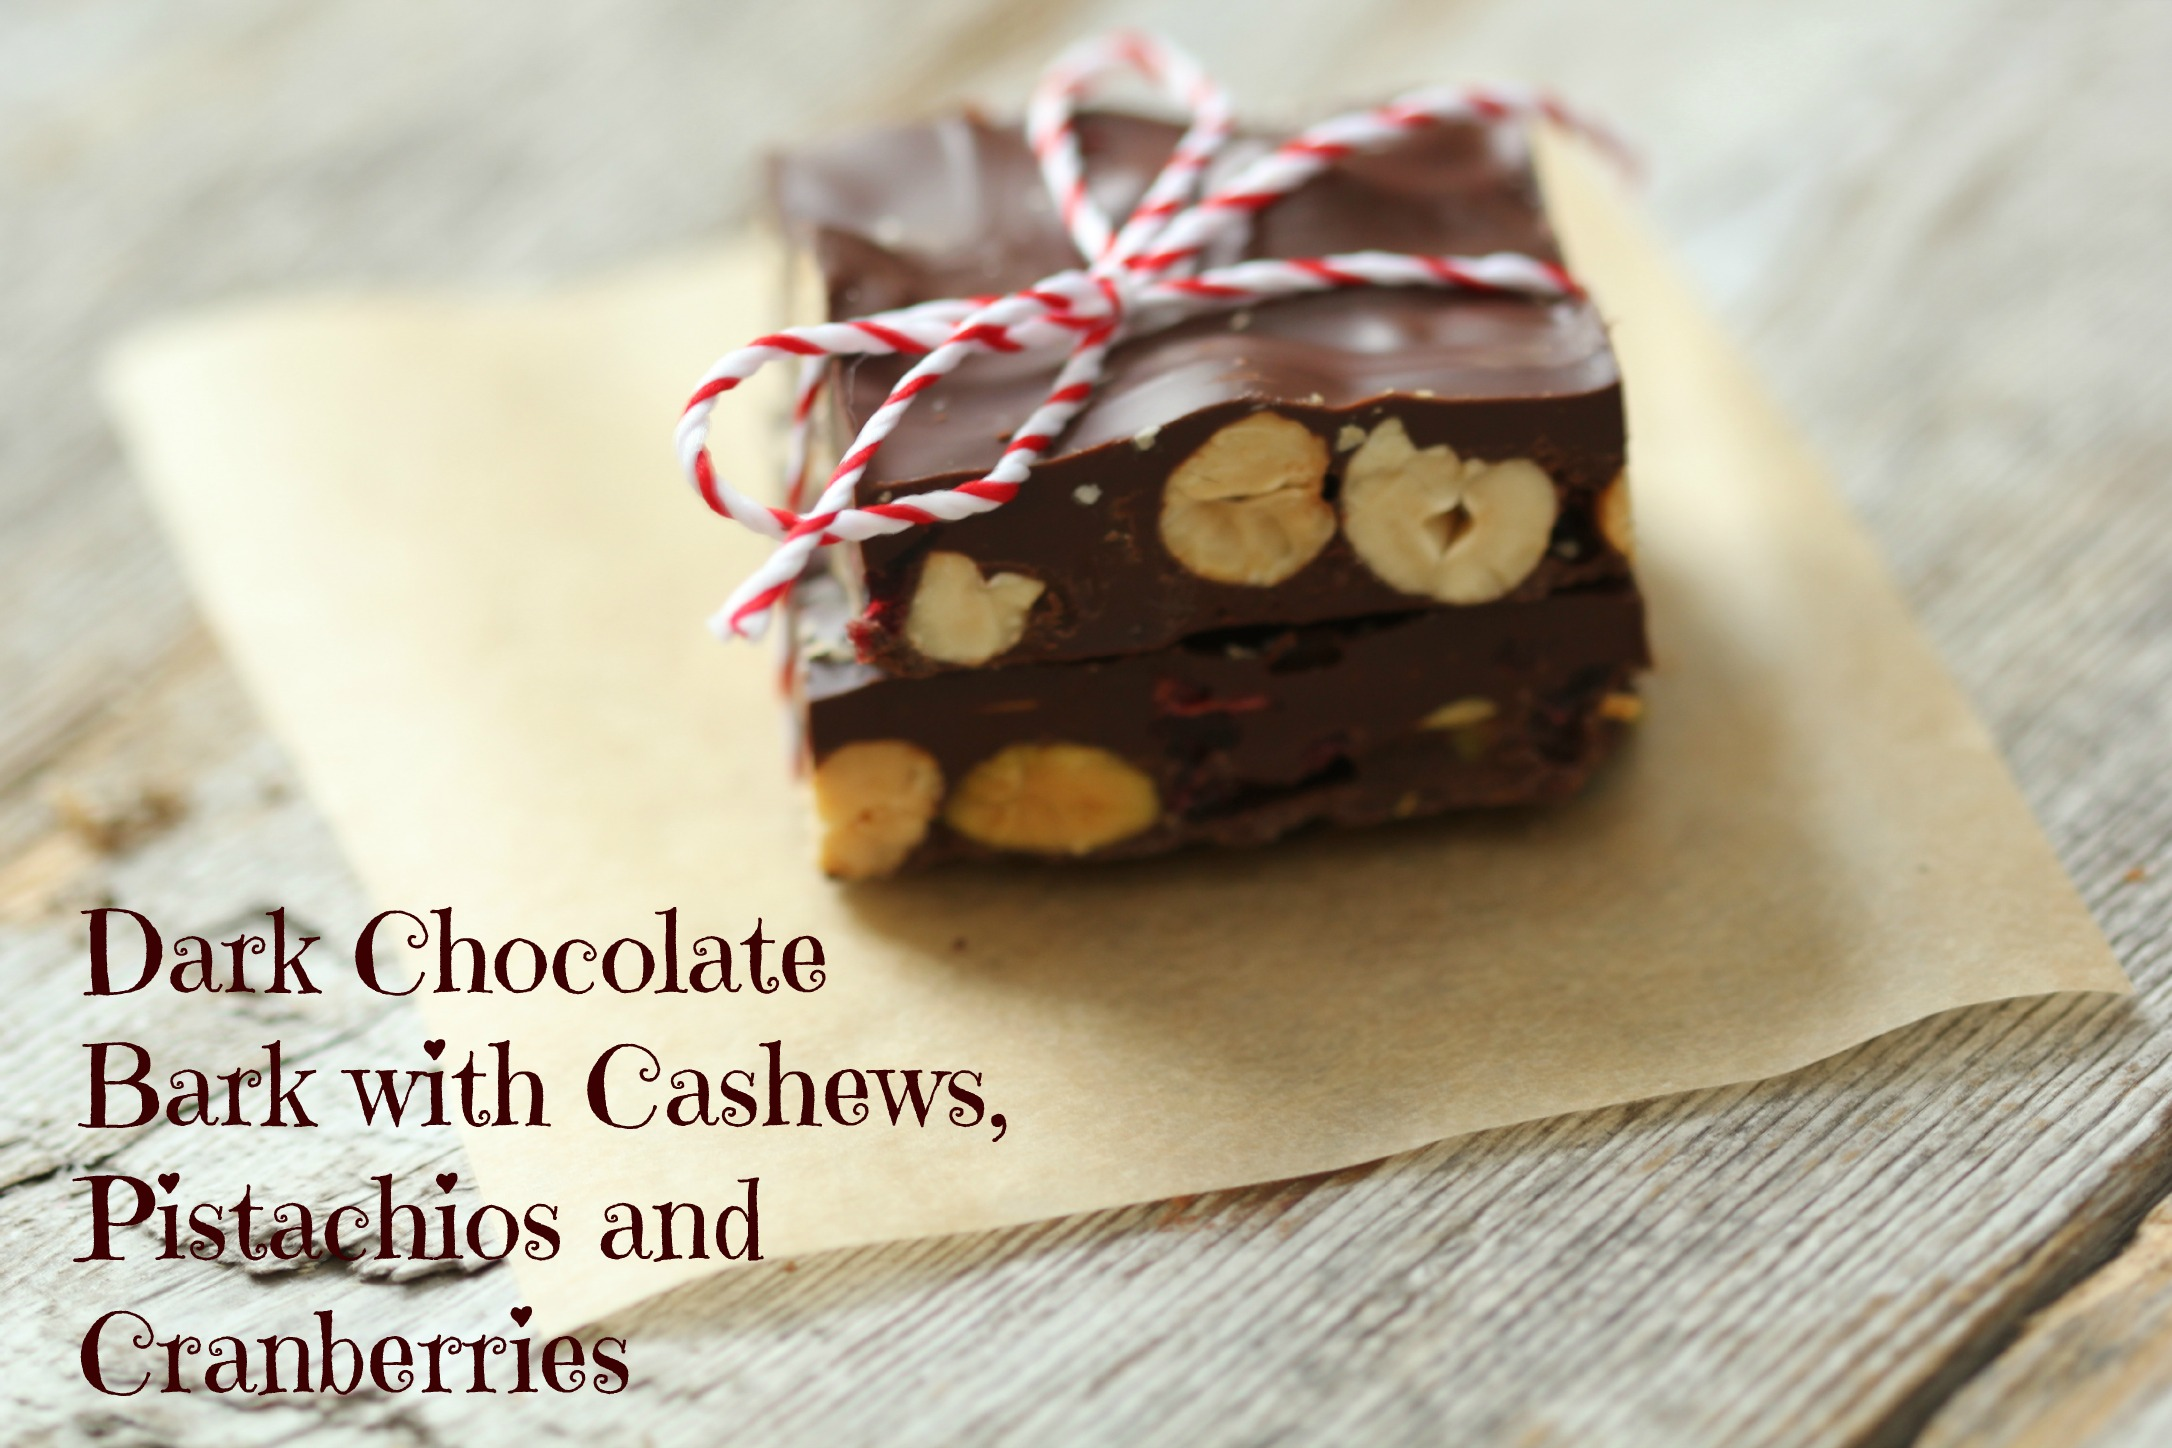 ... / Dark Chocolate Bark with Cashews, Pistachios, and Cranberries